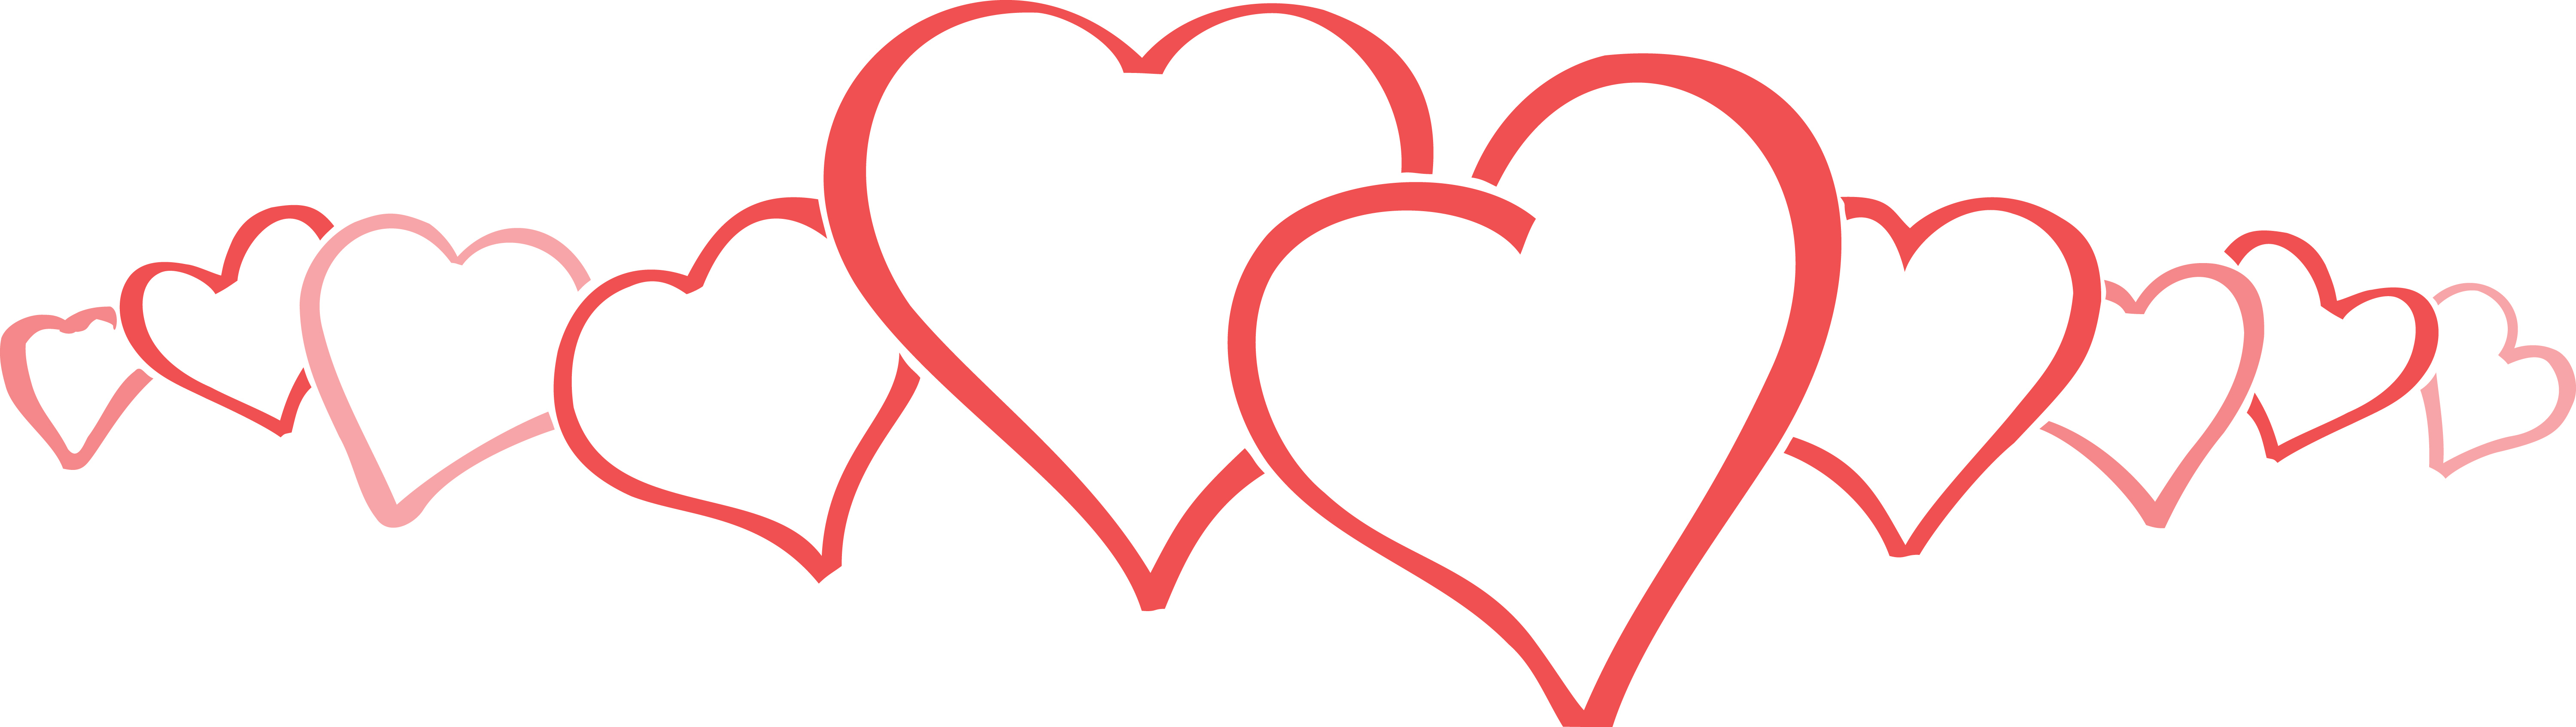 Clip Art Line Of Hearts : Free clipart of a row big and little love hearts